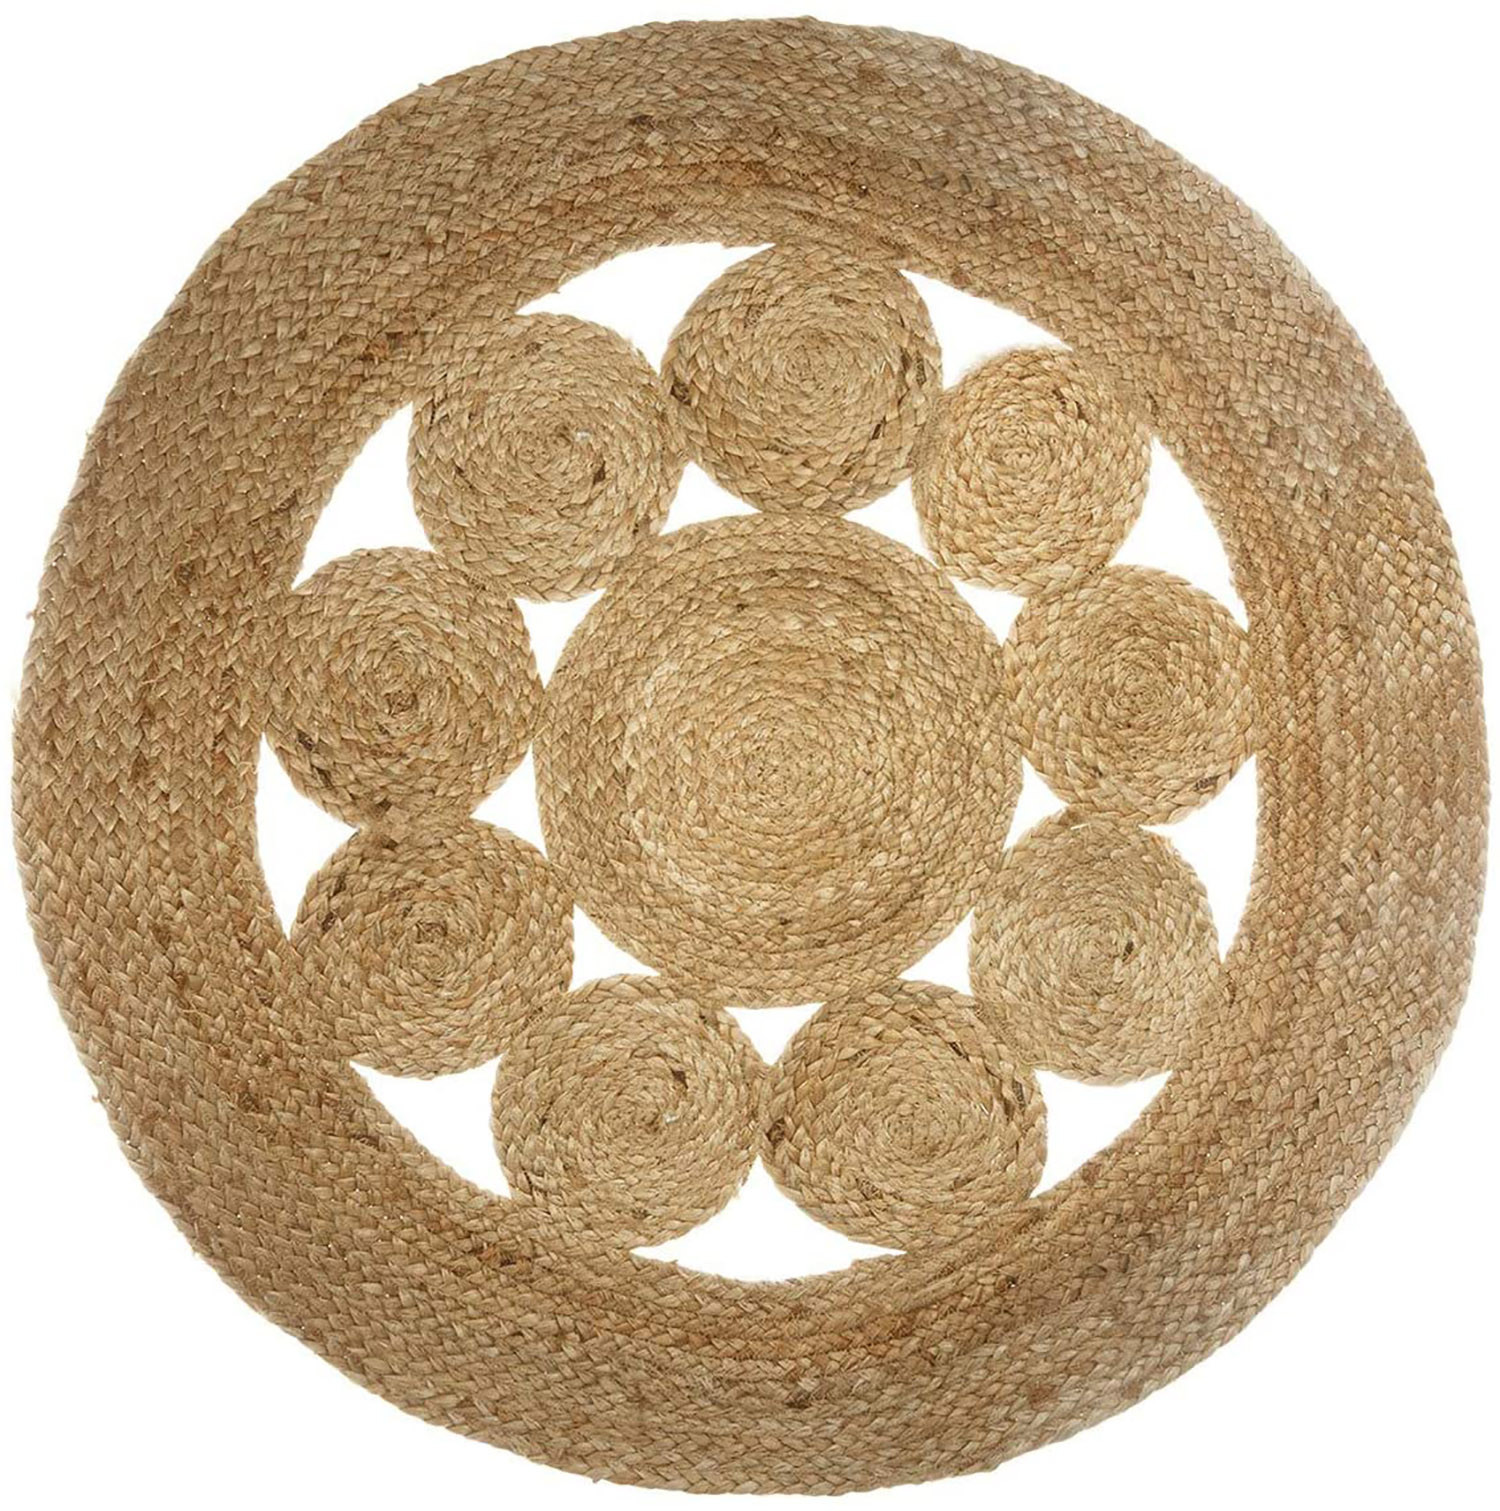 Carpet Jute for living Room or Bedroom, Carpet 100% Natural Round. Decor Tapestry ethnic 80 cm